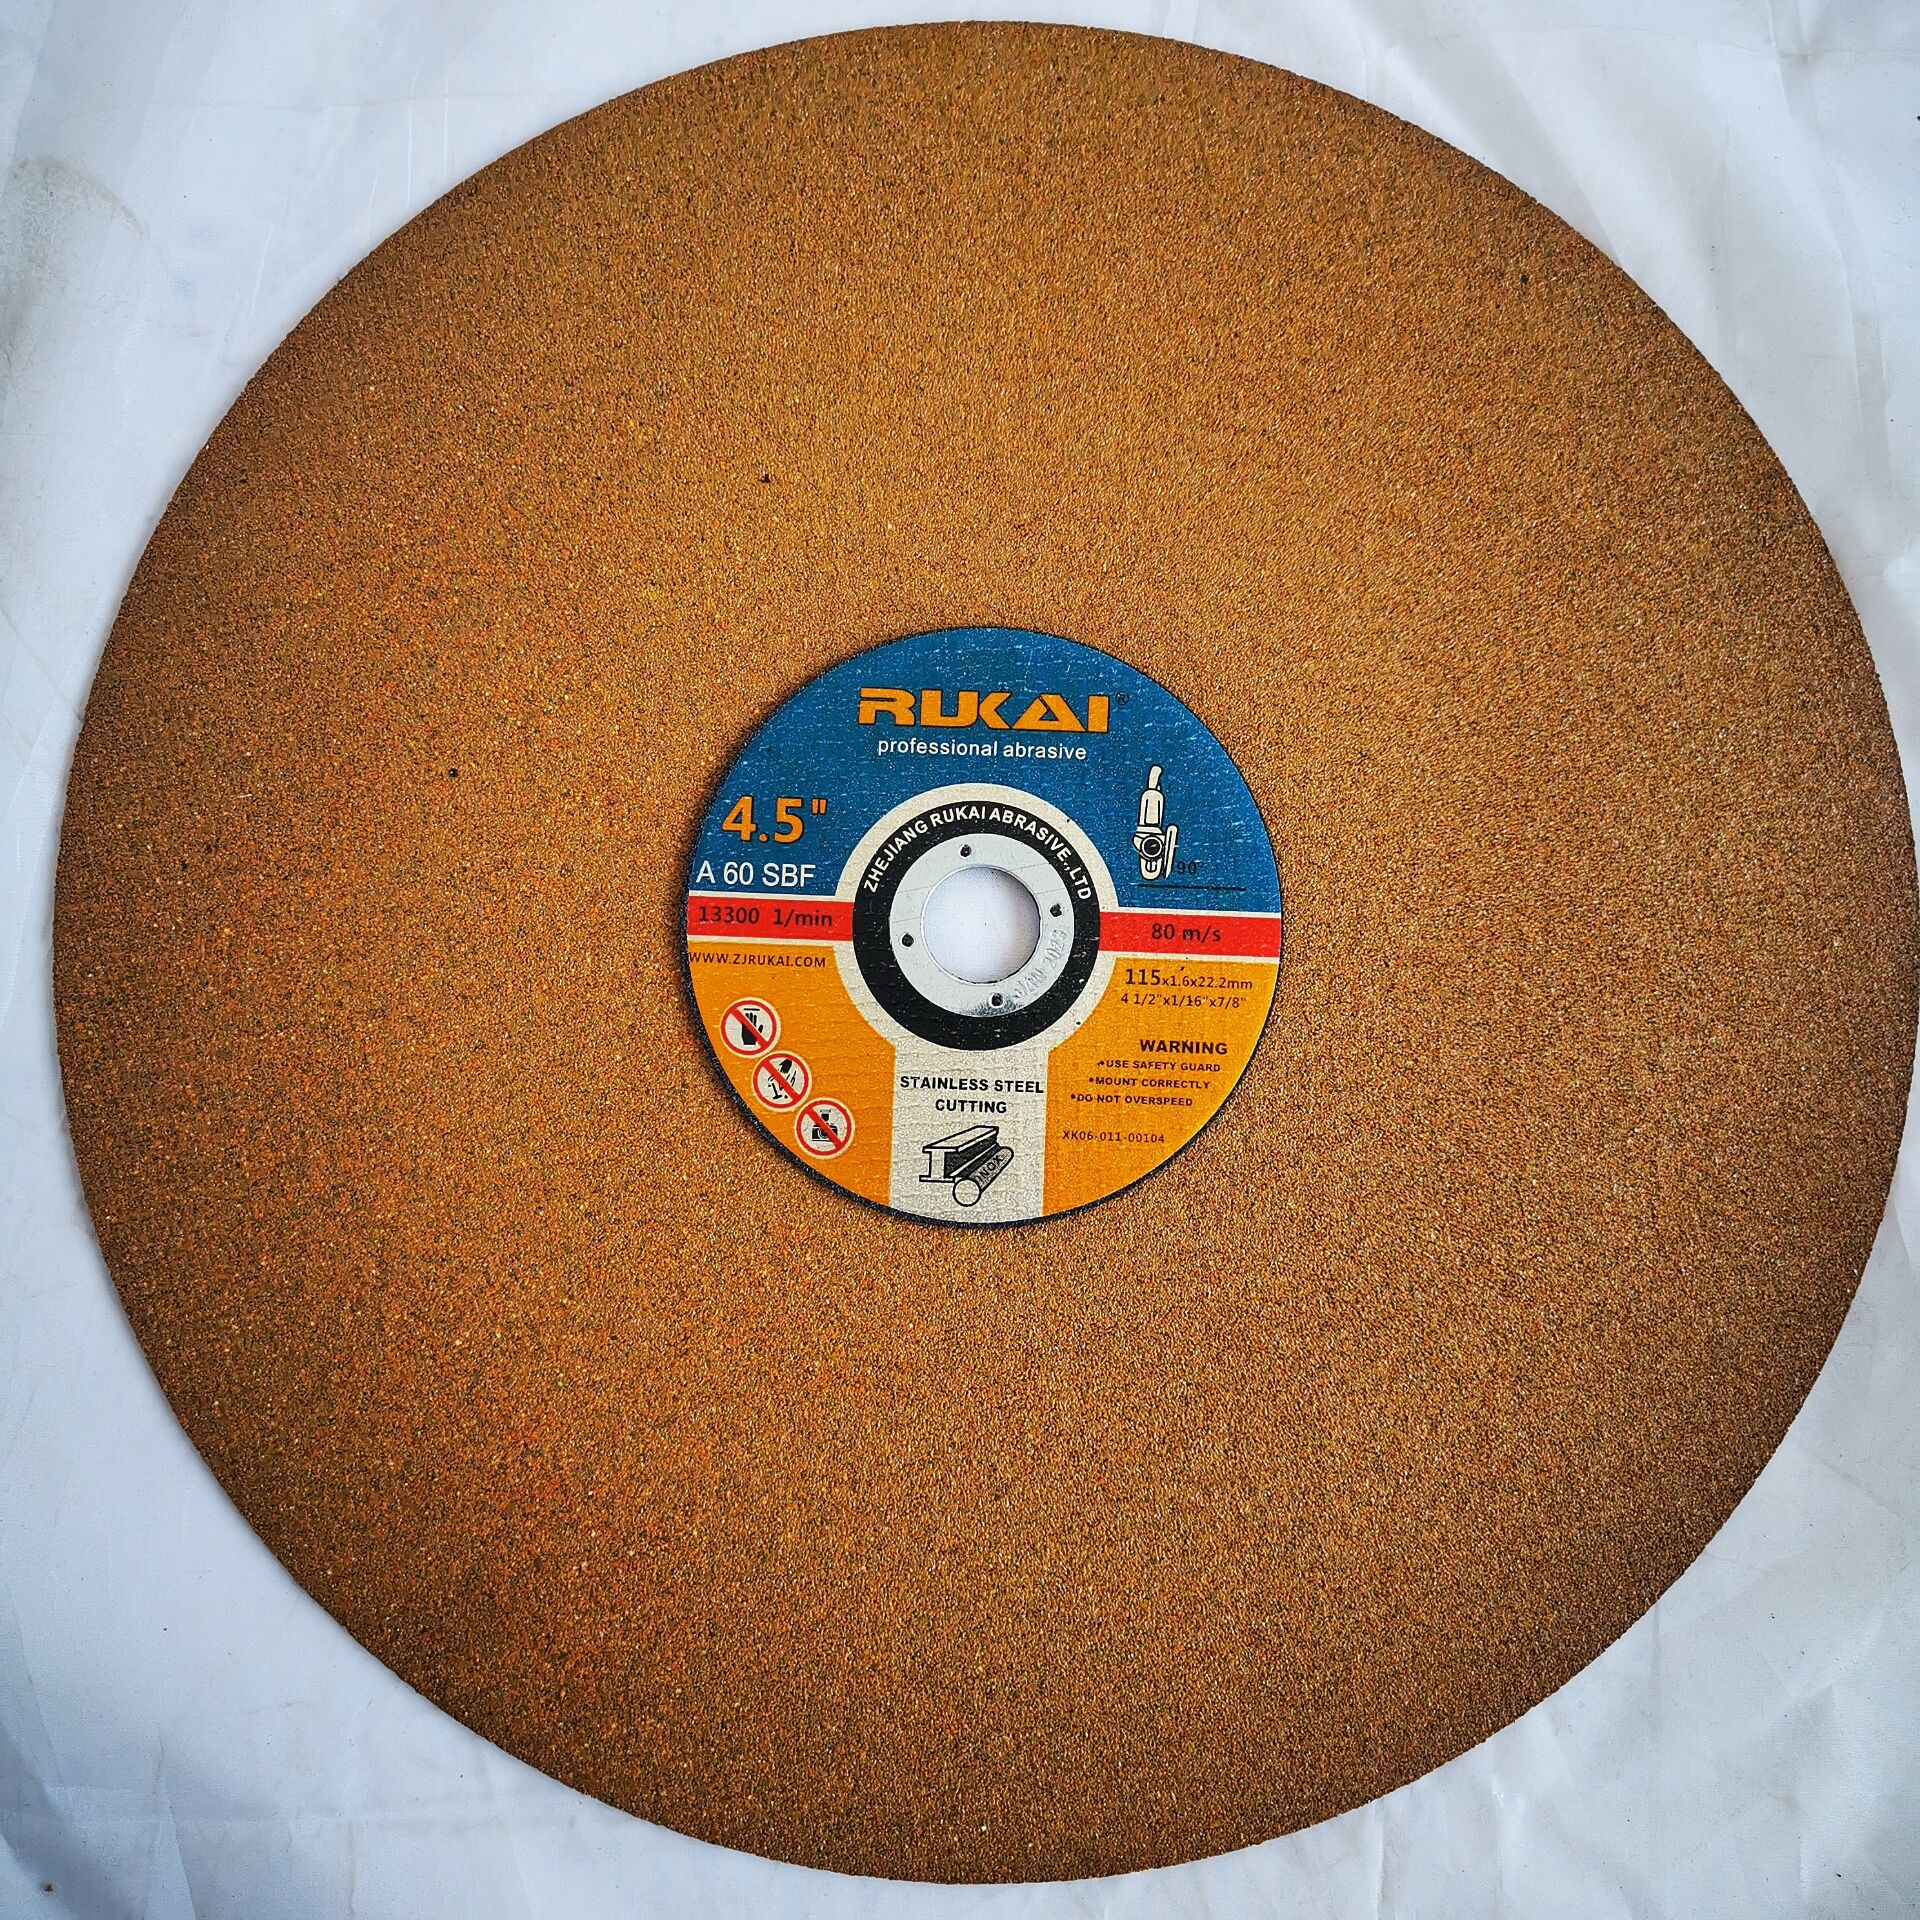 Rukai 16 Inch Resin Bond Abrasive Cutting Wheel